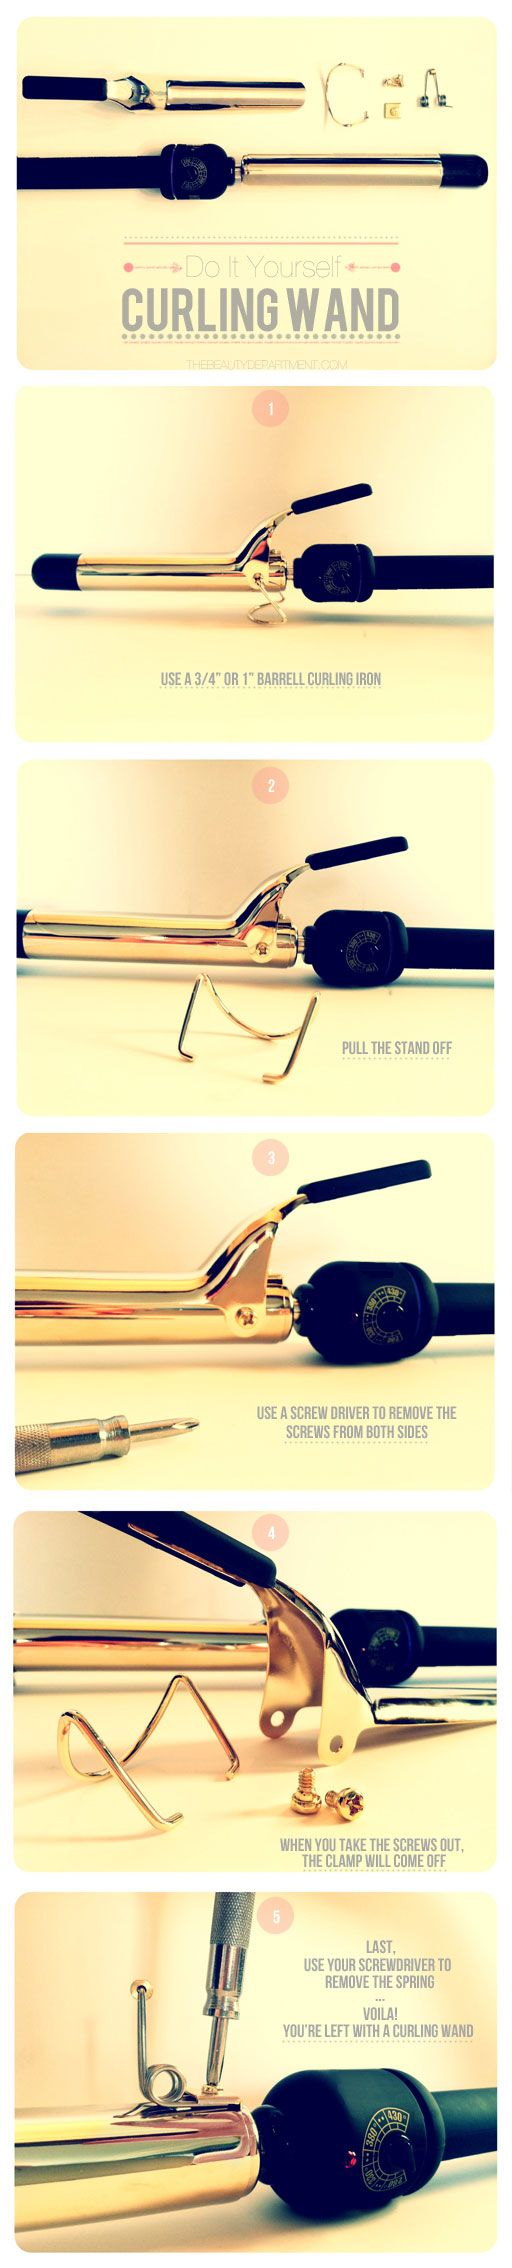 Make your own curling wand...